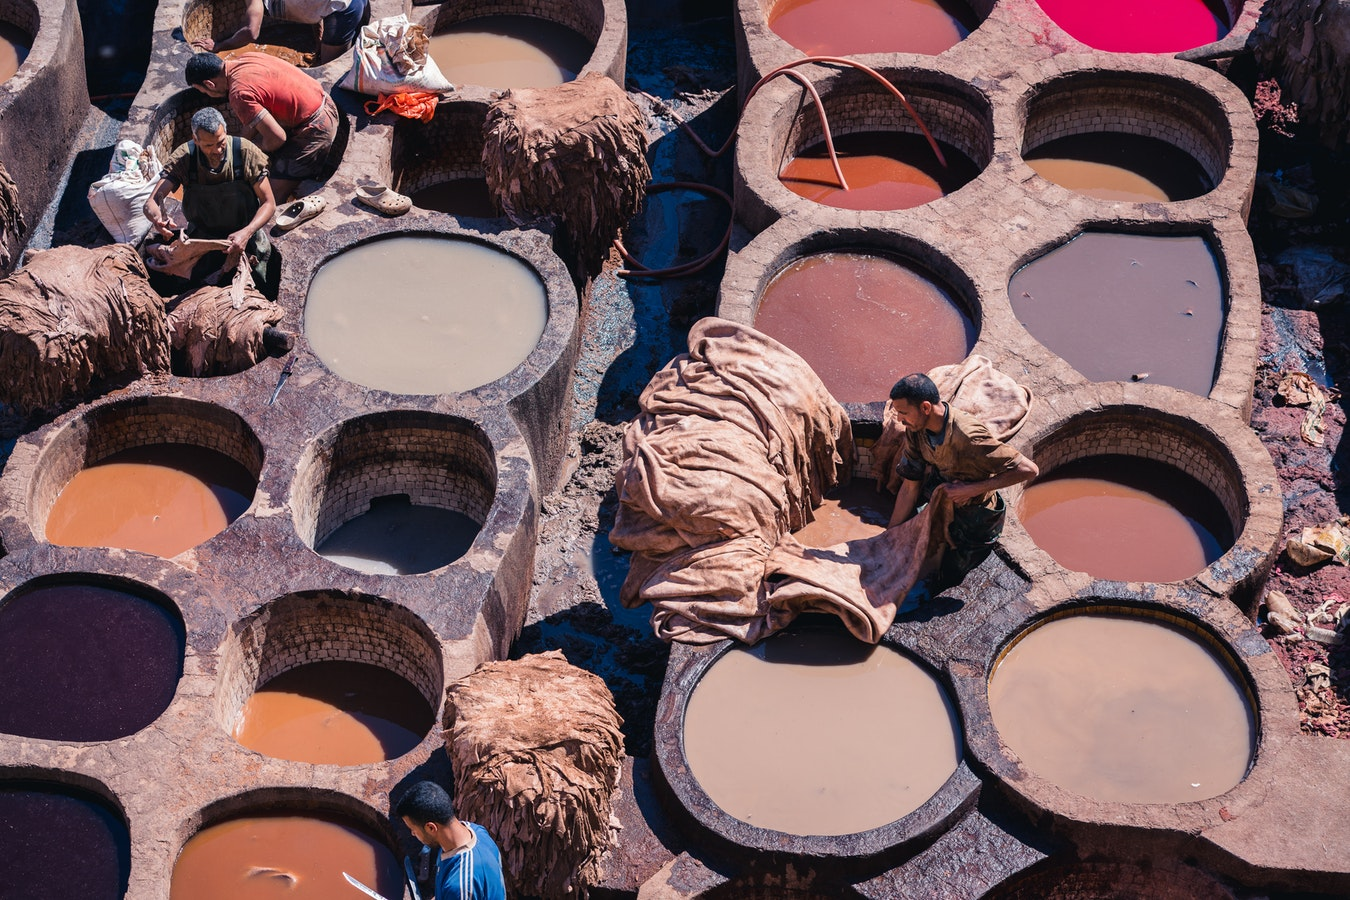 Located in Fes El Bali, the oldest Medina quarter in the city, you can watch the men at work in the Chouara Tannery.